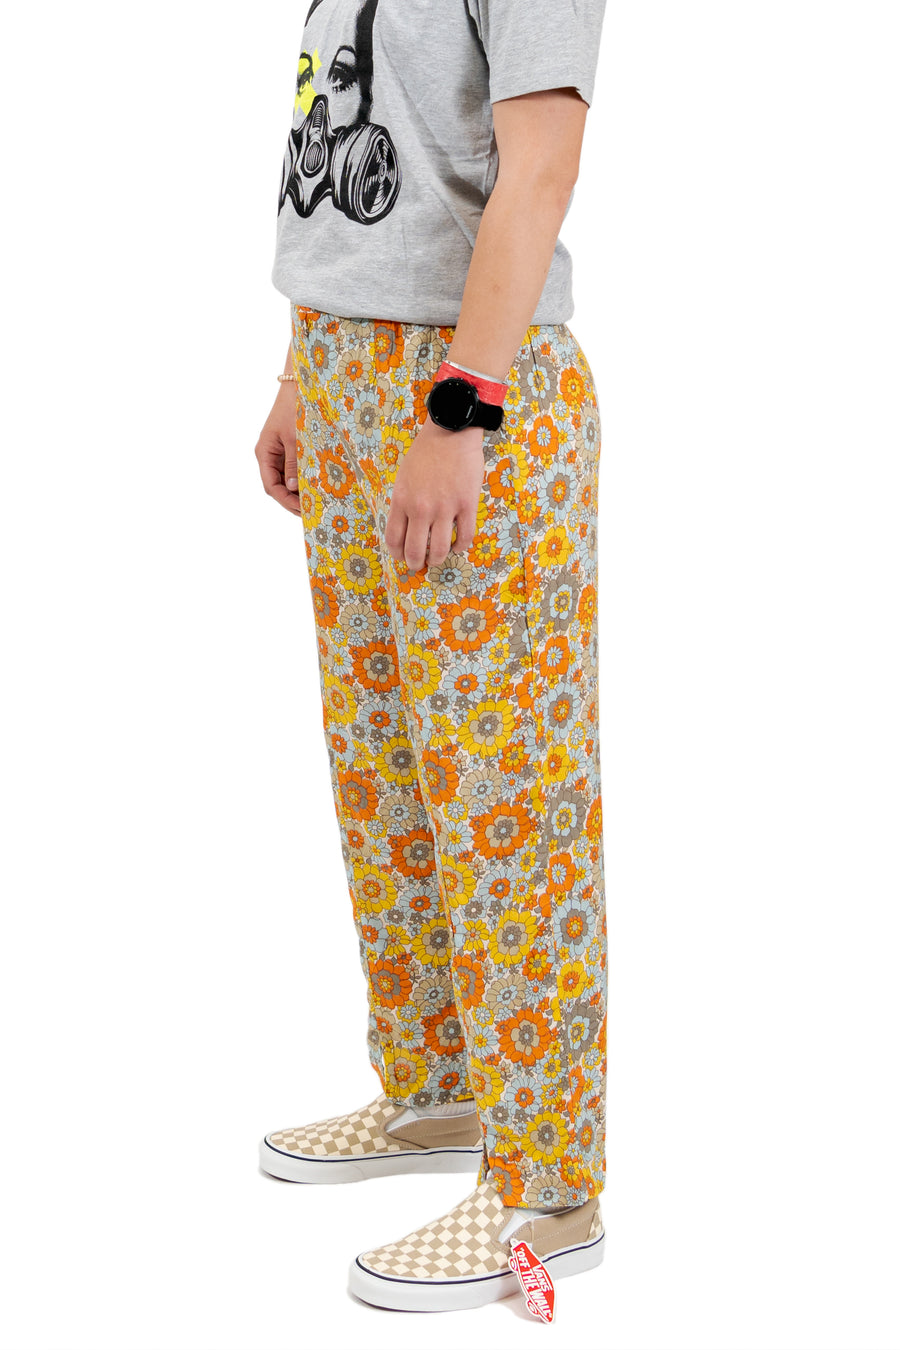 Brixton Night Fever Pant - Mod Floral